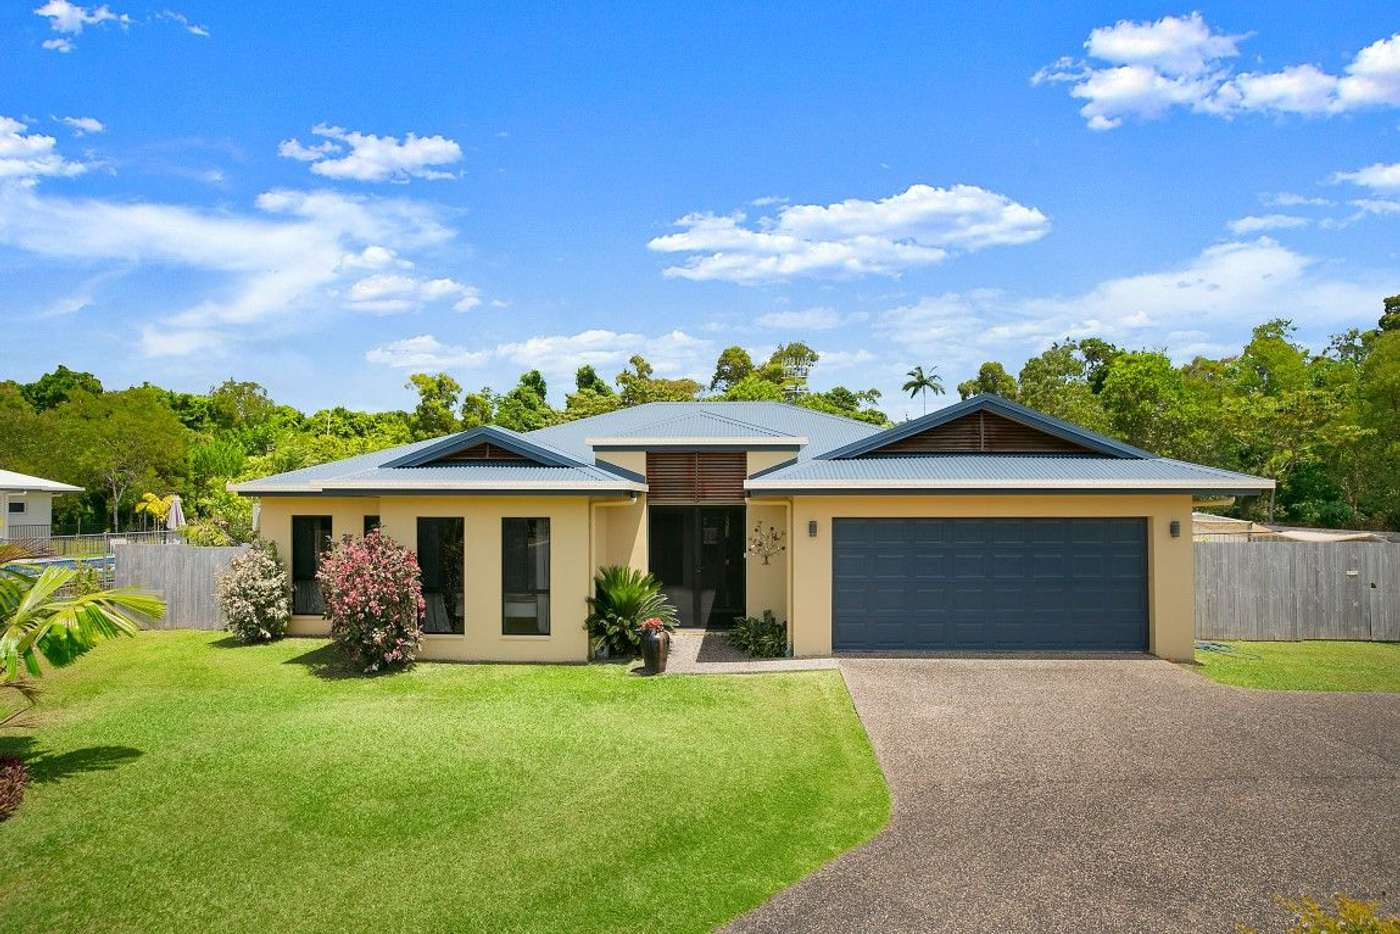 Main view of Homely house listing, 56 Sanctuary Crescent, Wongaling Beach QLD 4852